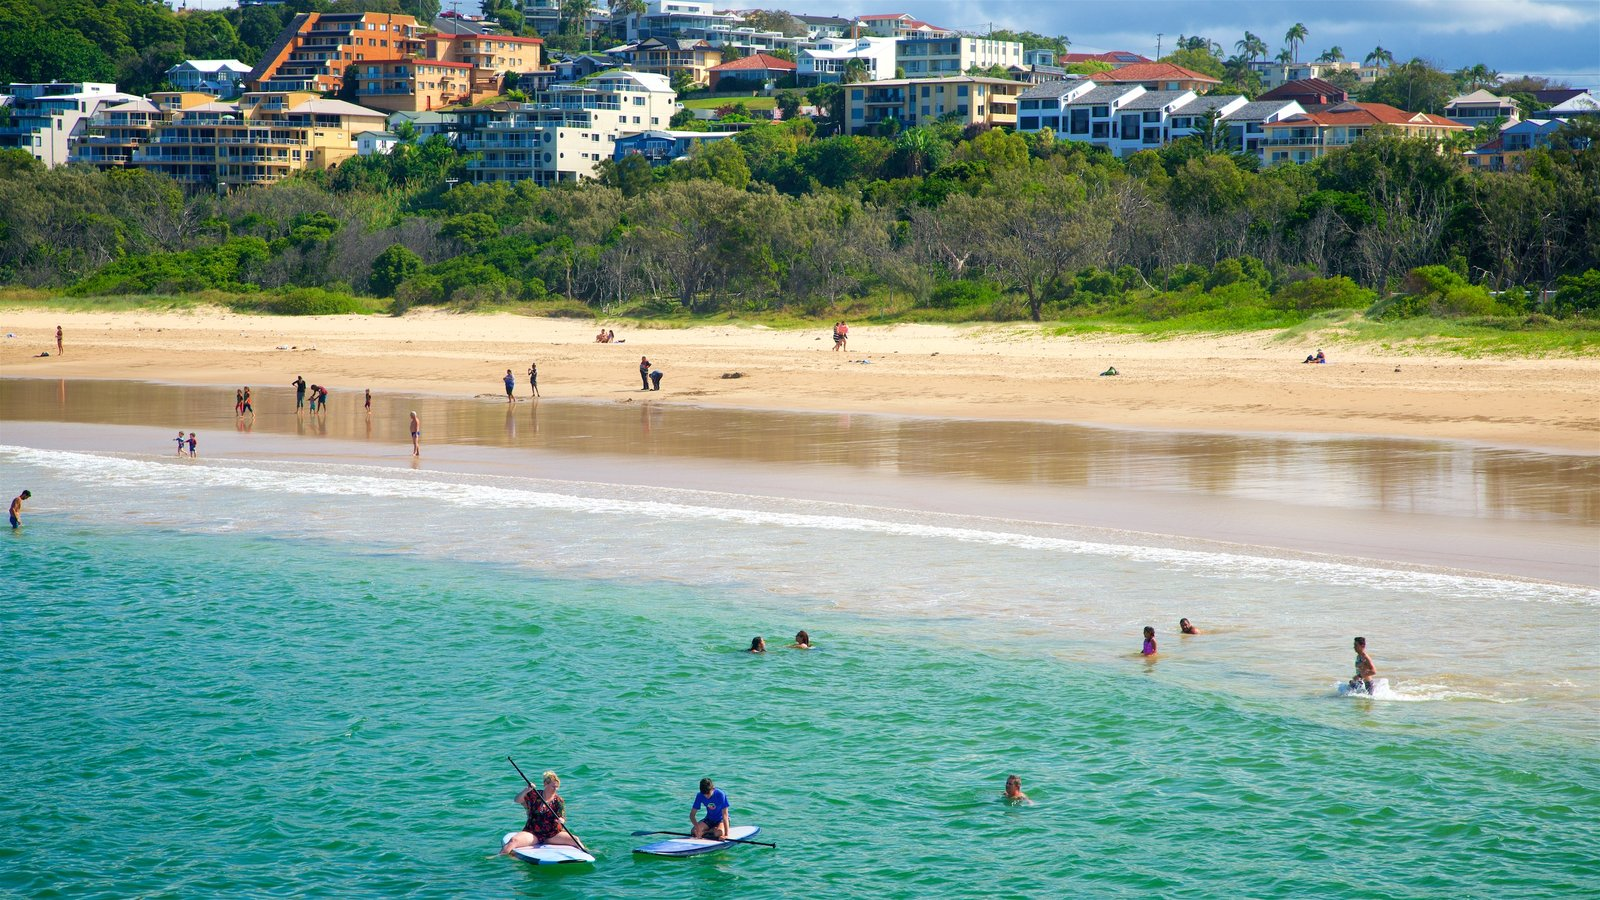 Coffs Harbour showing a sandy beach, swimming and a coastal town